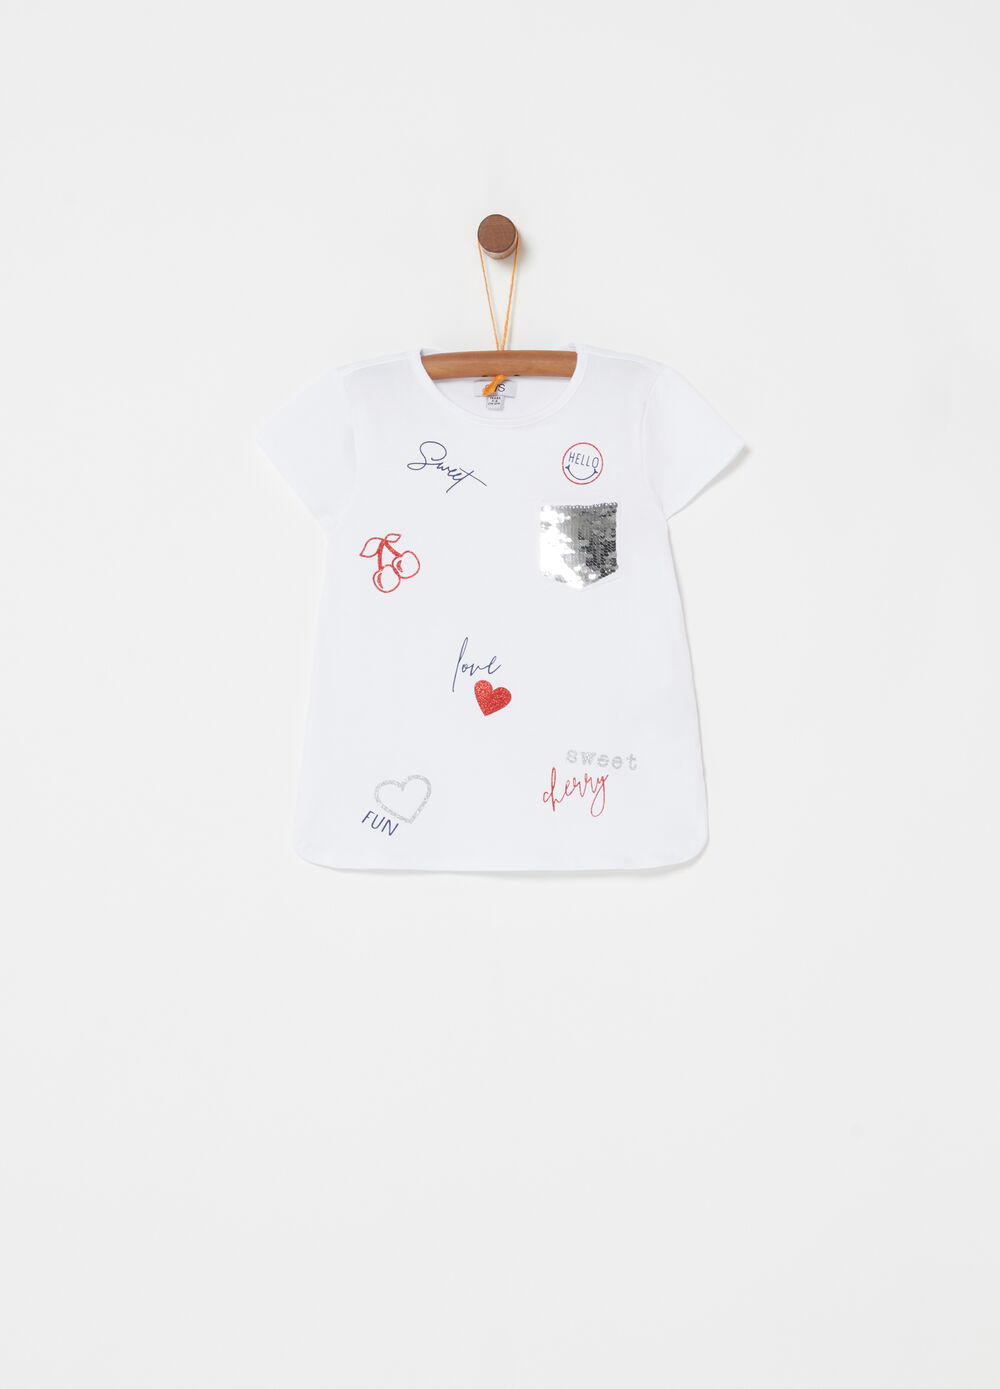 T-shirt with small pocket, sequins and print